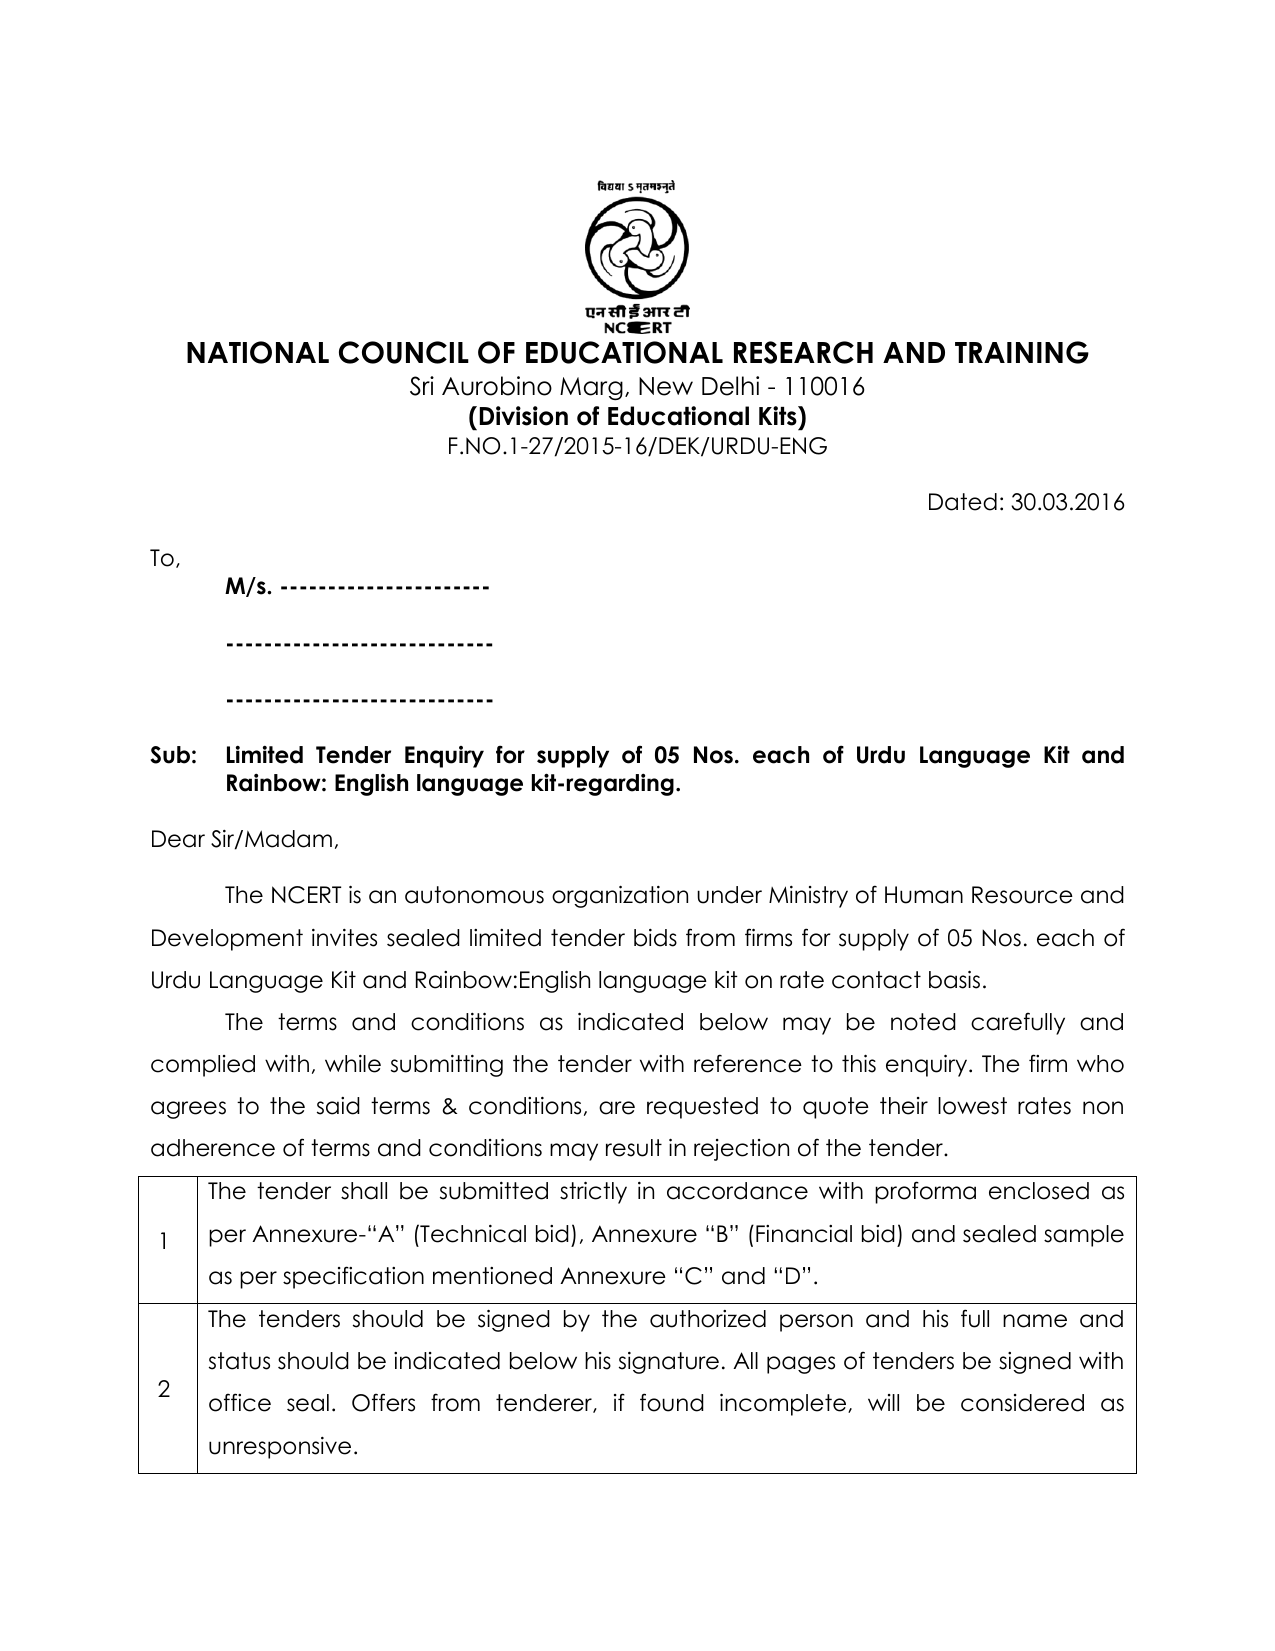 NATIONAL COUNCIL OF EDUCATIONAL RESEARCH AND TRAINING (Division of